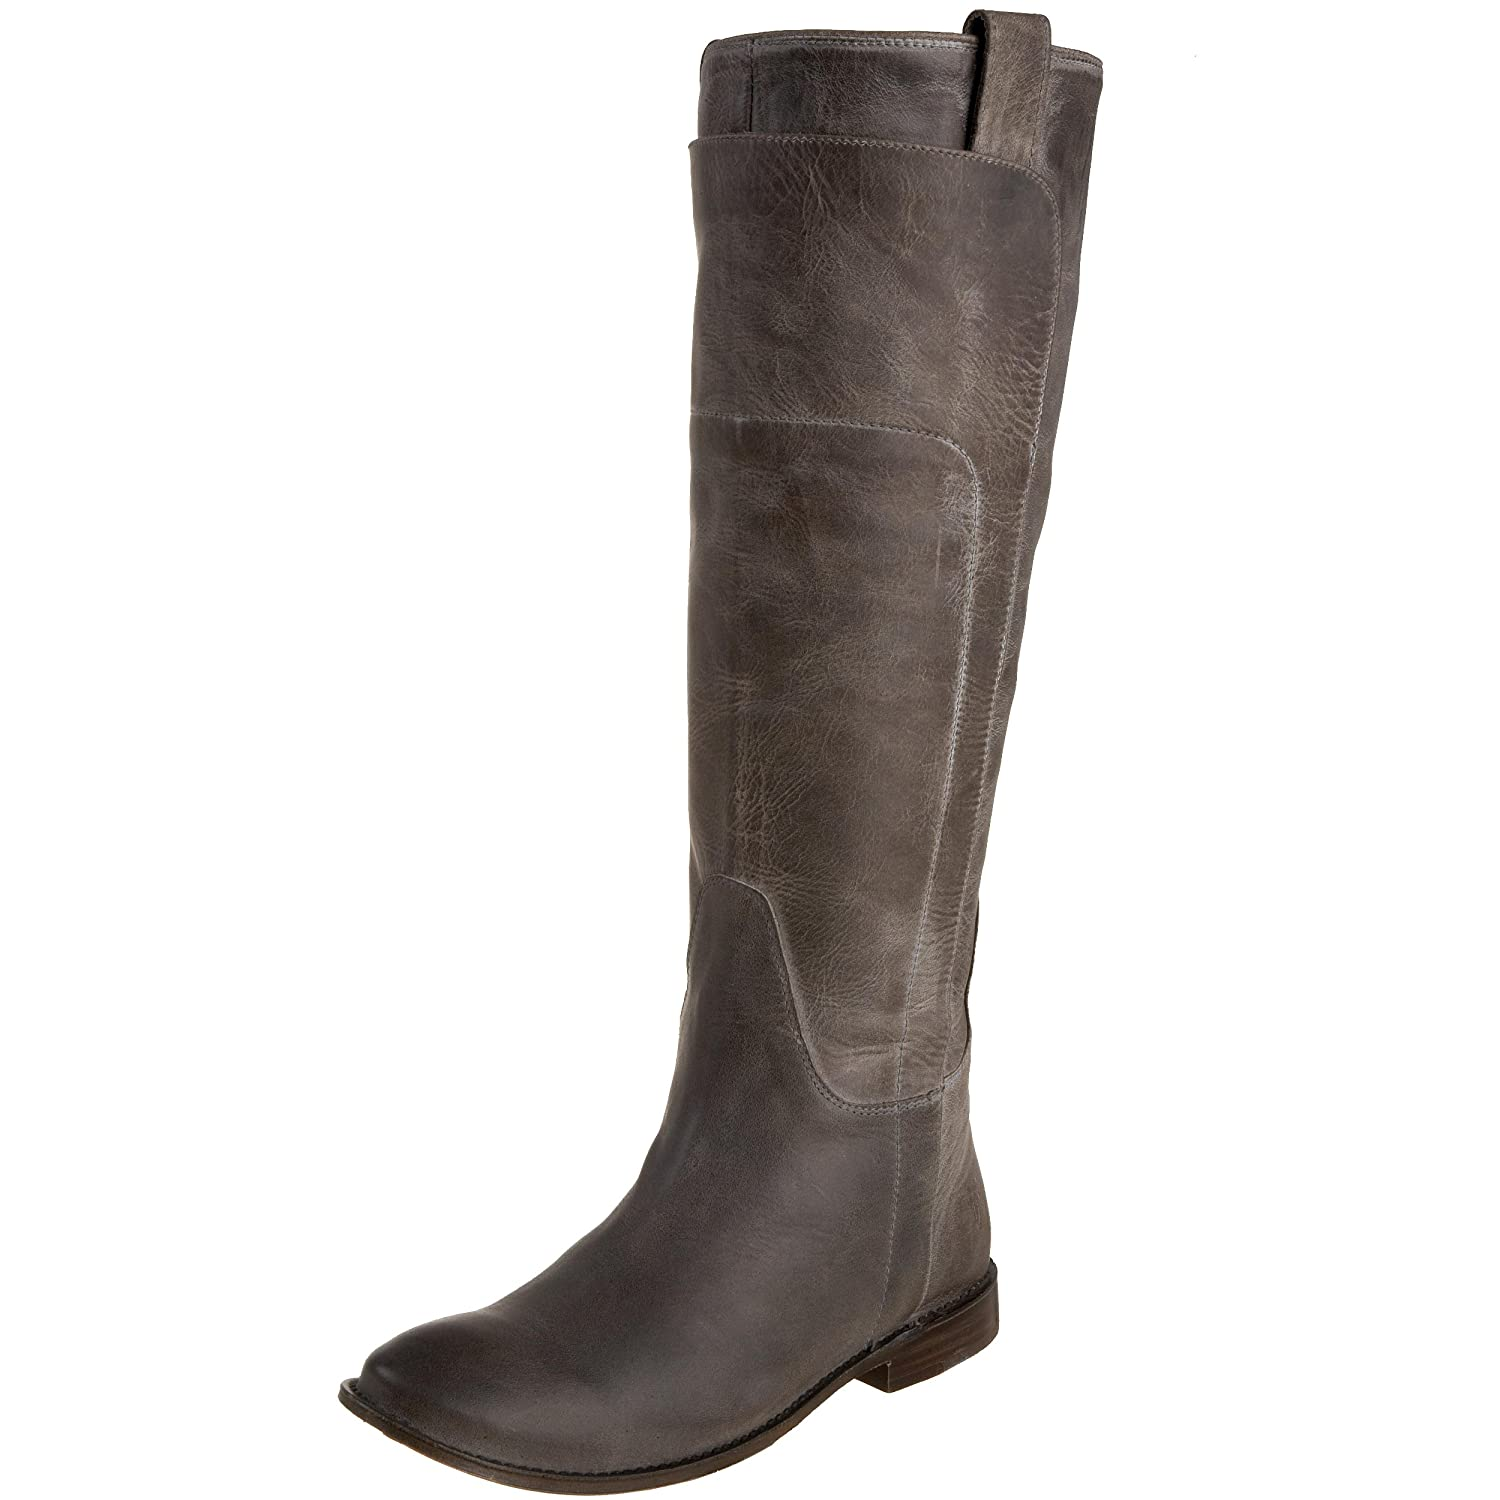 Grey Burnished Leather Frye Women's Paige Tall Riding Boot